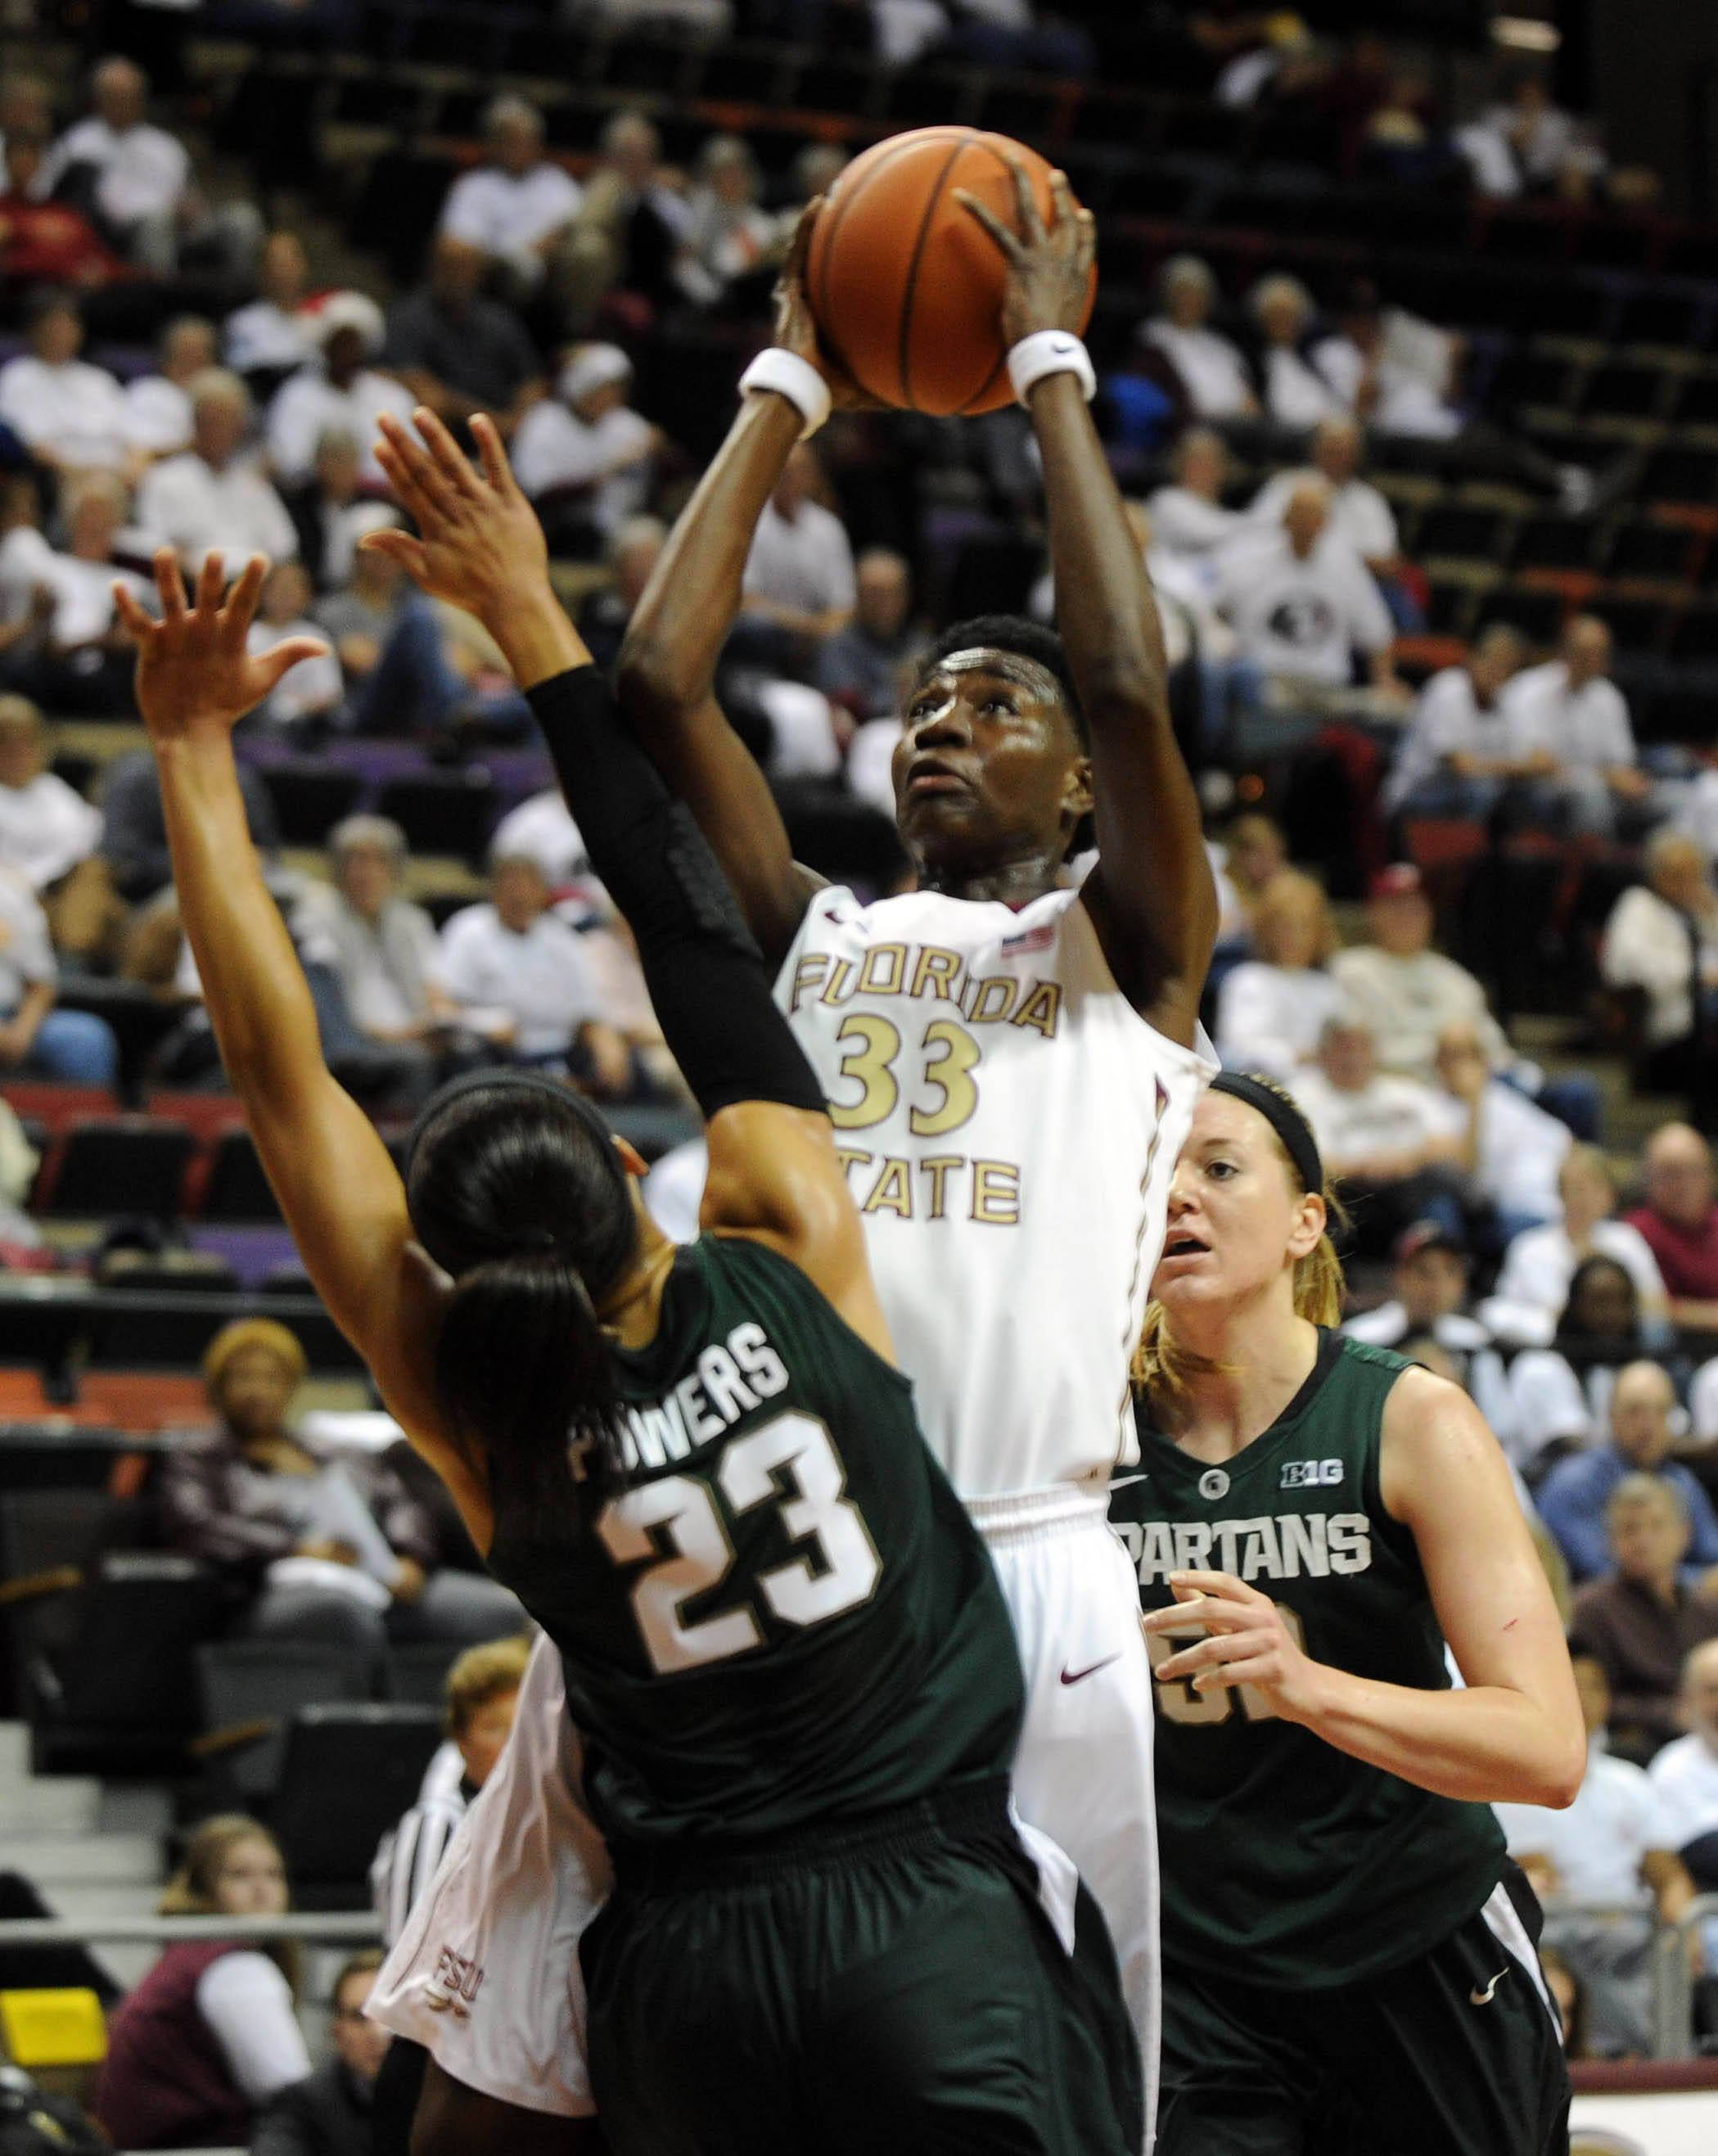 Dec 4, 2013; Tallahassee, FL, USA; Florida State Seminoles forward Natasha Howard (33) shoots over Michigan State Spartans guard Aerial Powers (23)  during the game at the Donald L. Tucker Center (Tallahassee). Mandatory Credit: Melina Vastola-USA TODAY Sports